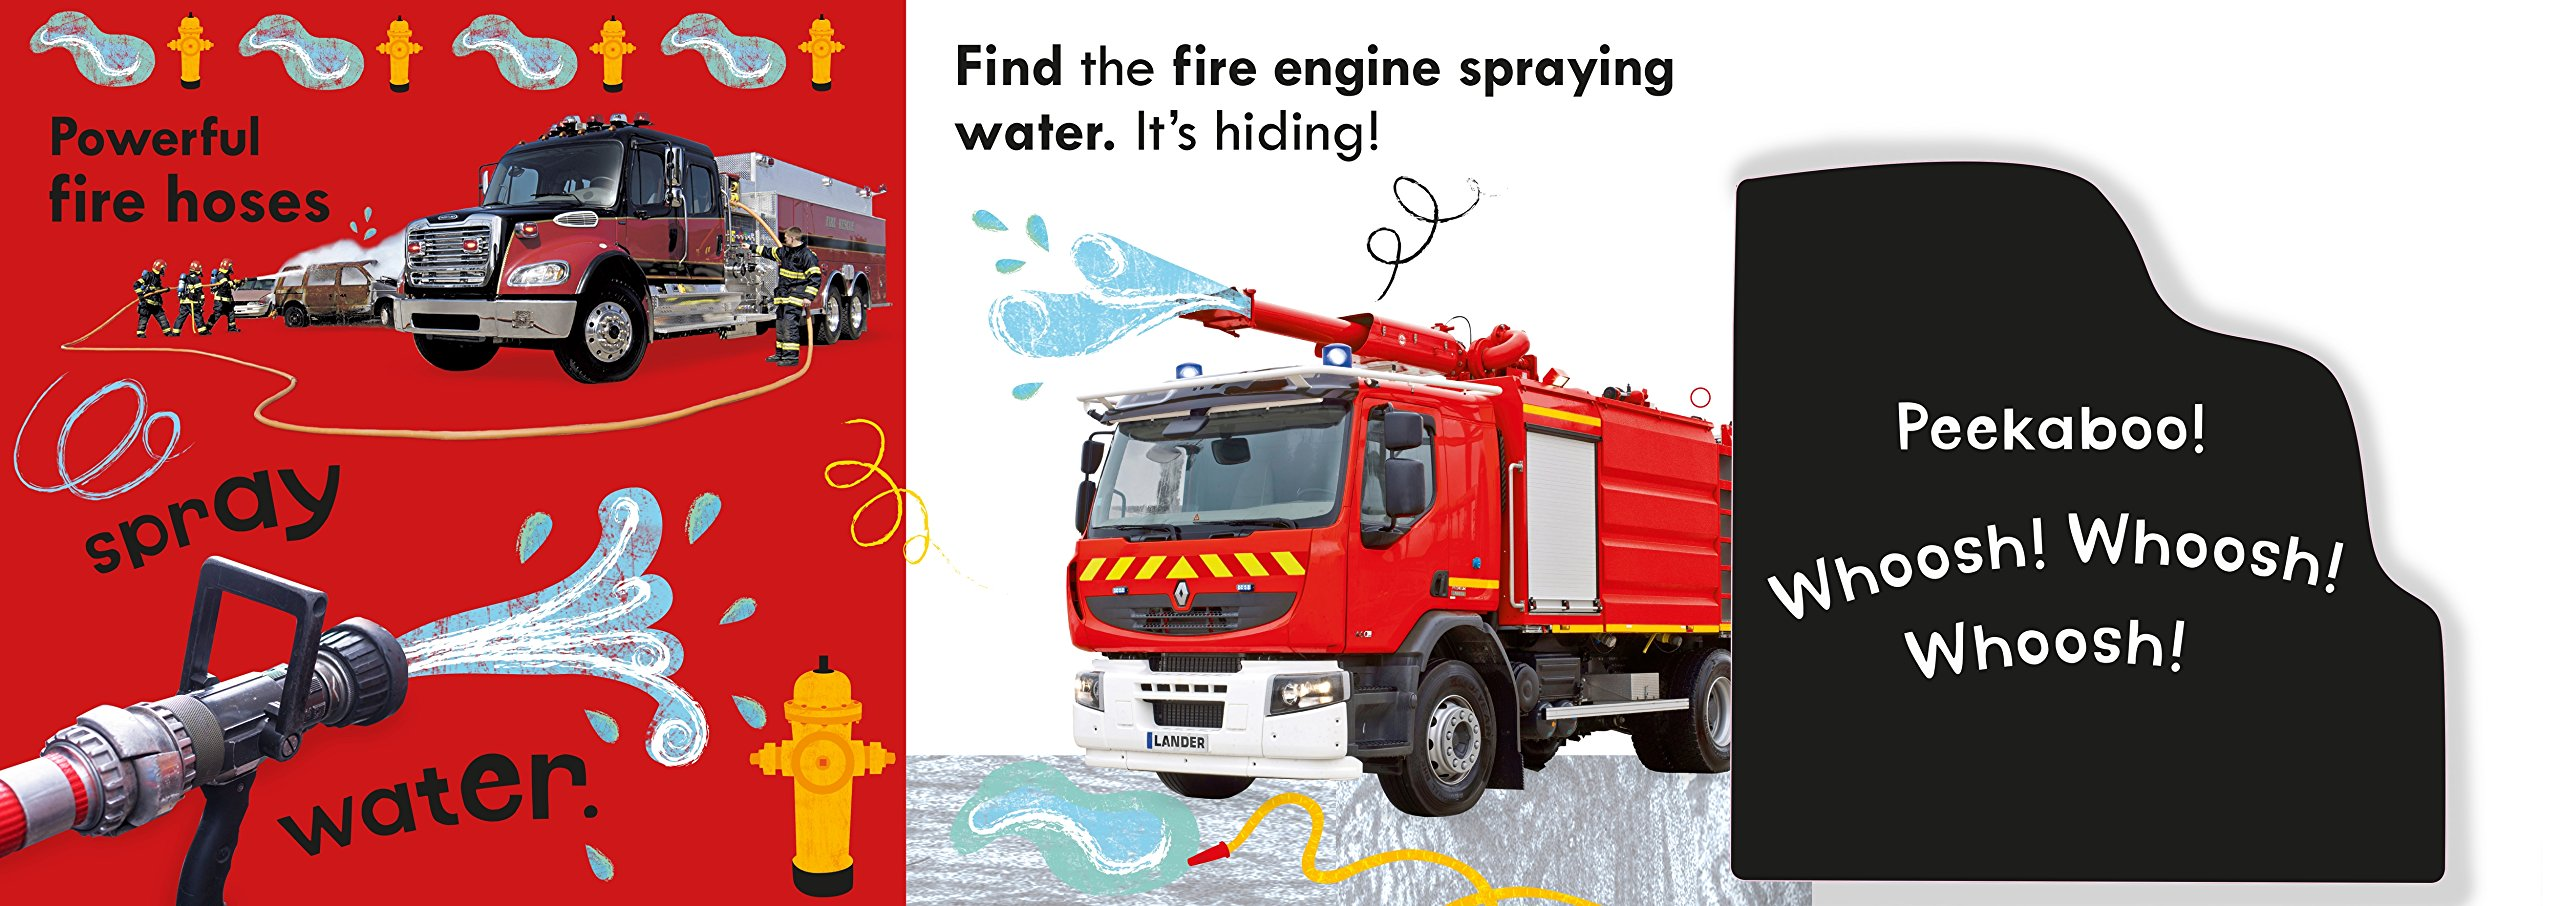 Noisy Fire Engine Peekaboo! by DK Children (Image #6)